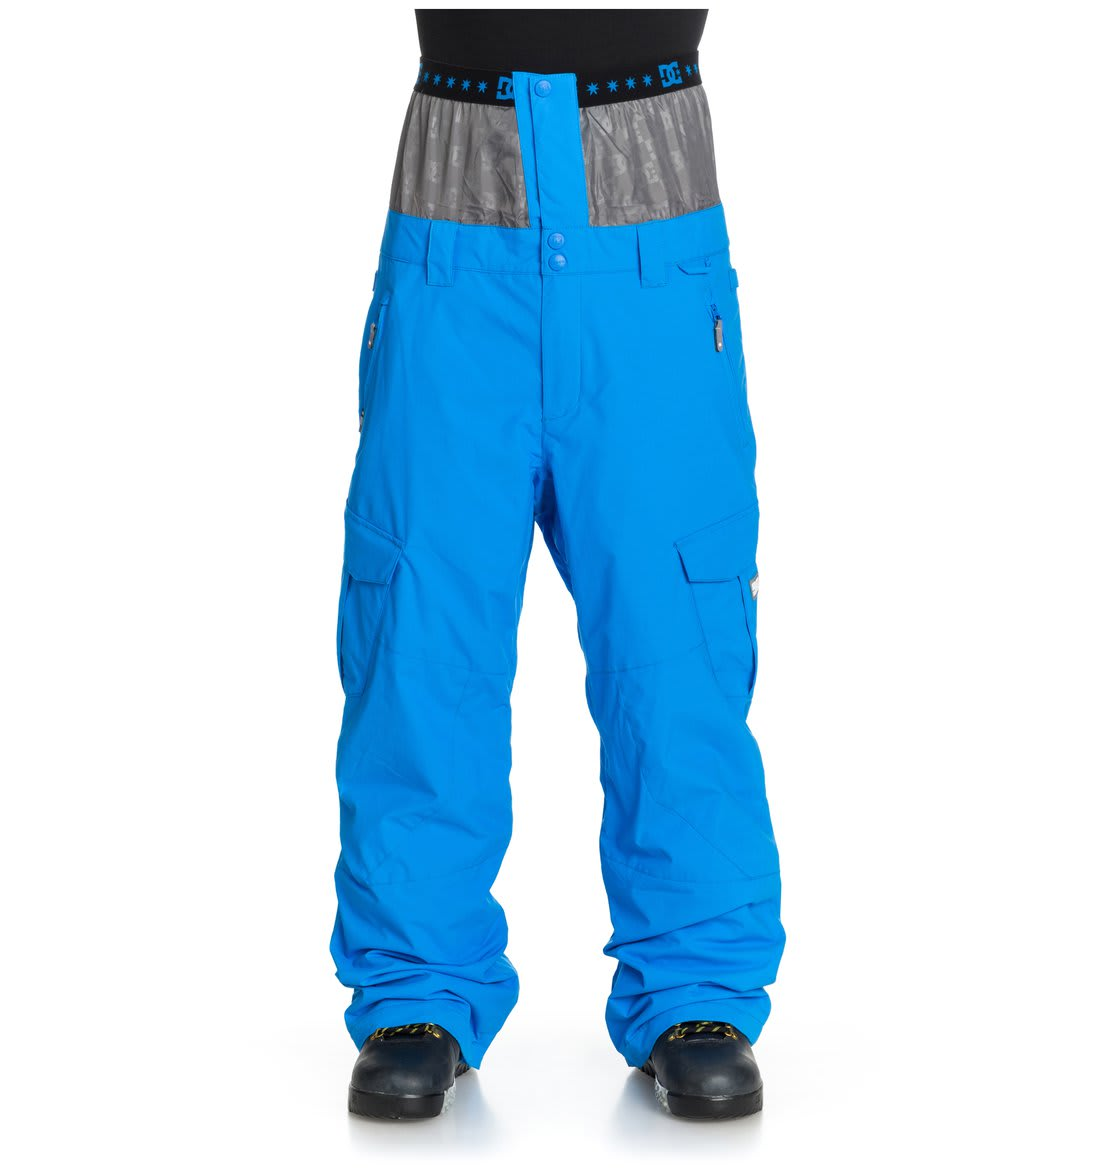 On Sale Dc Donon Snowboard Pants Up To 50 Off